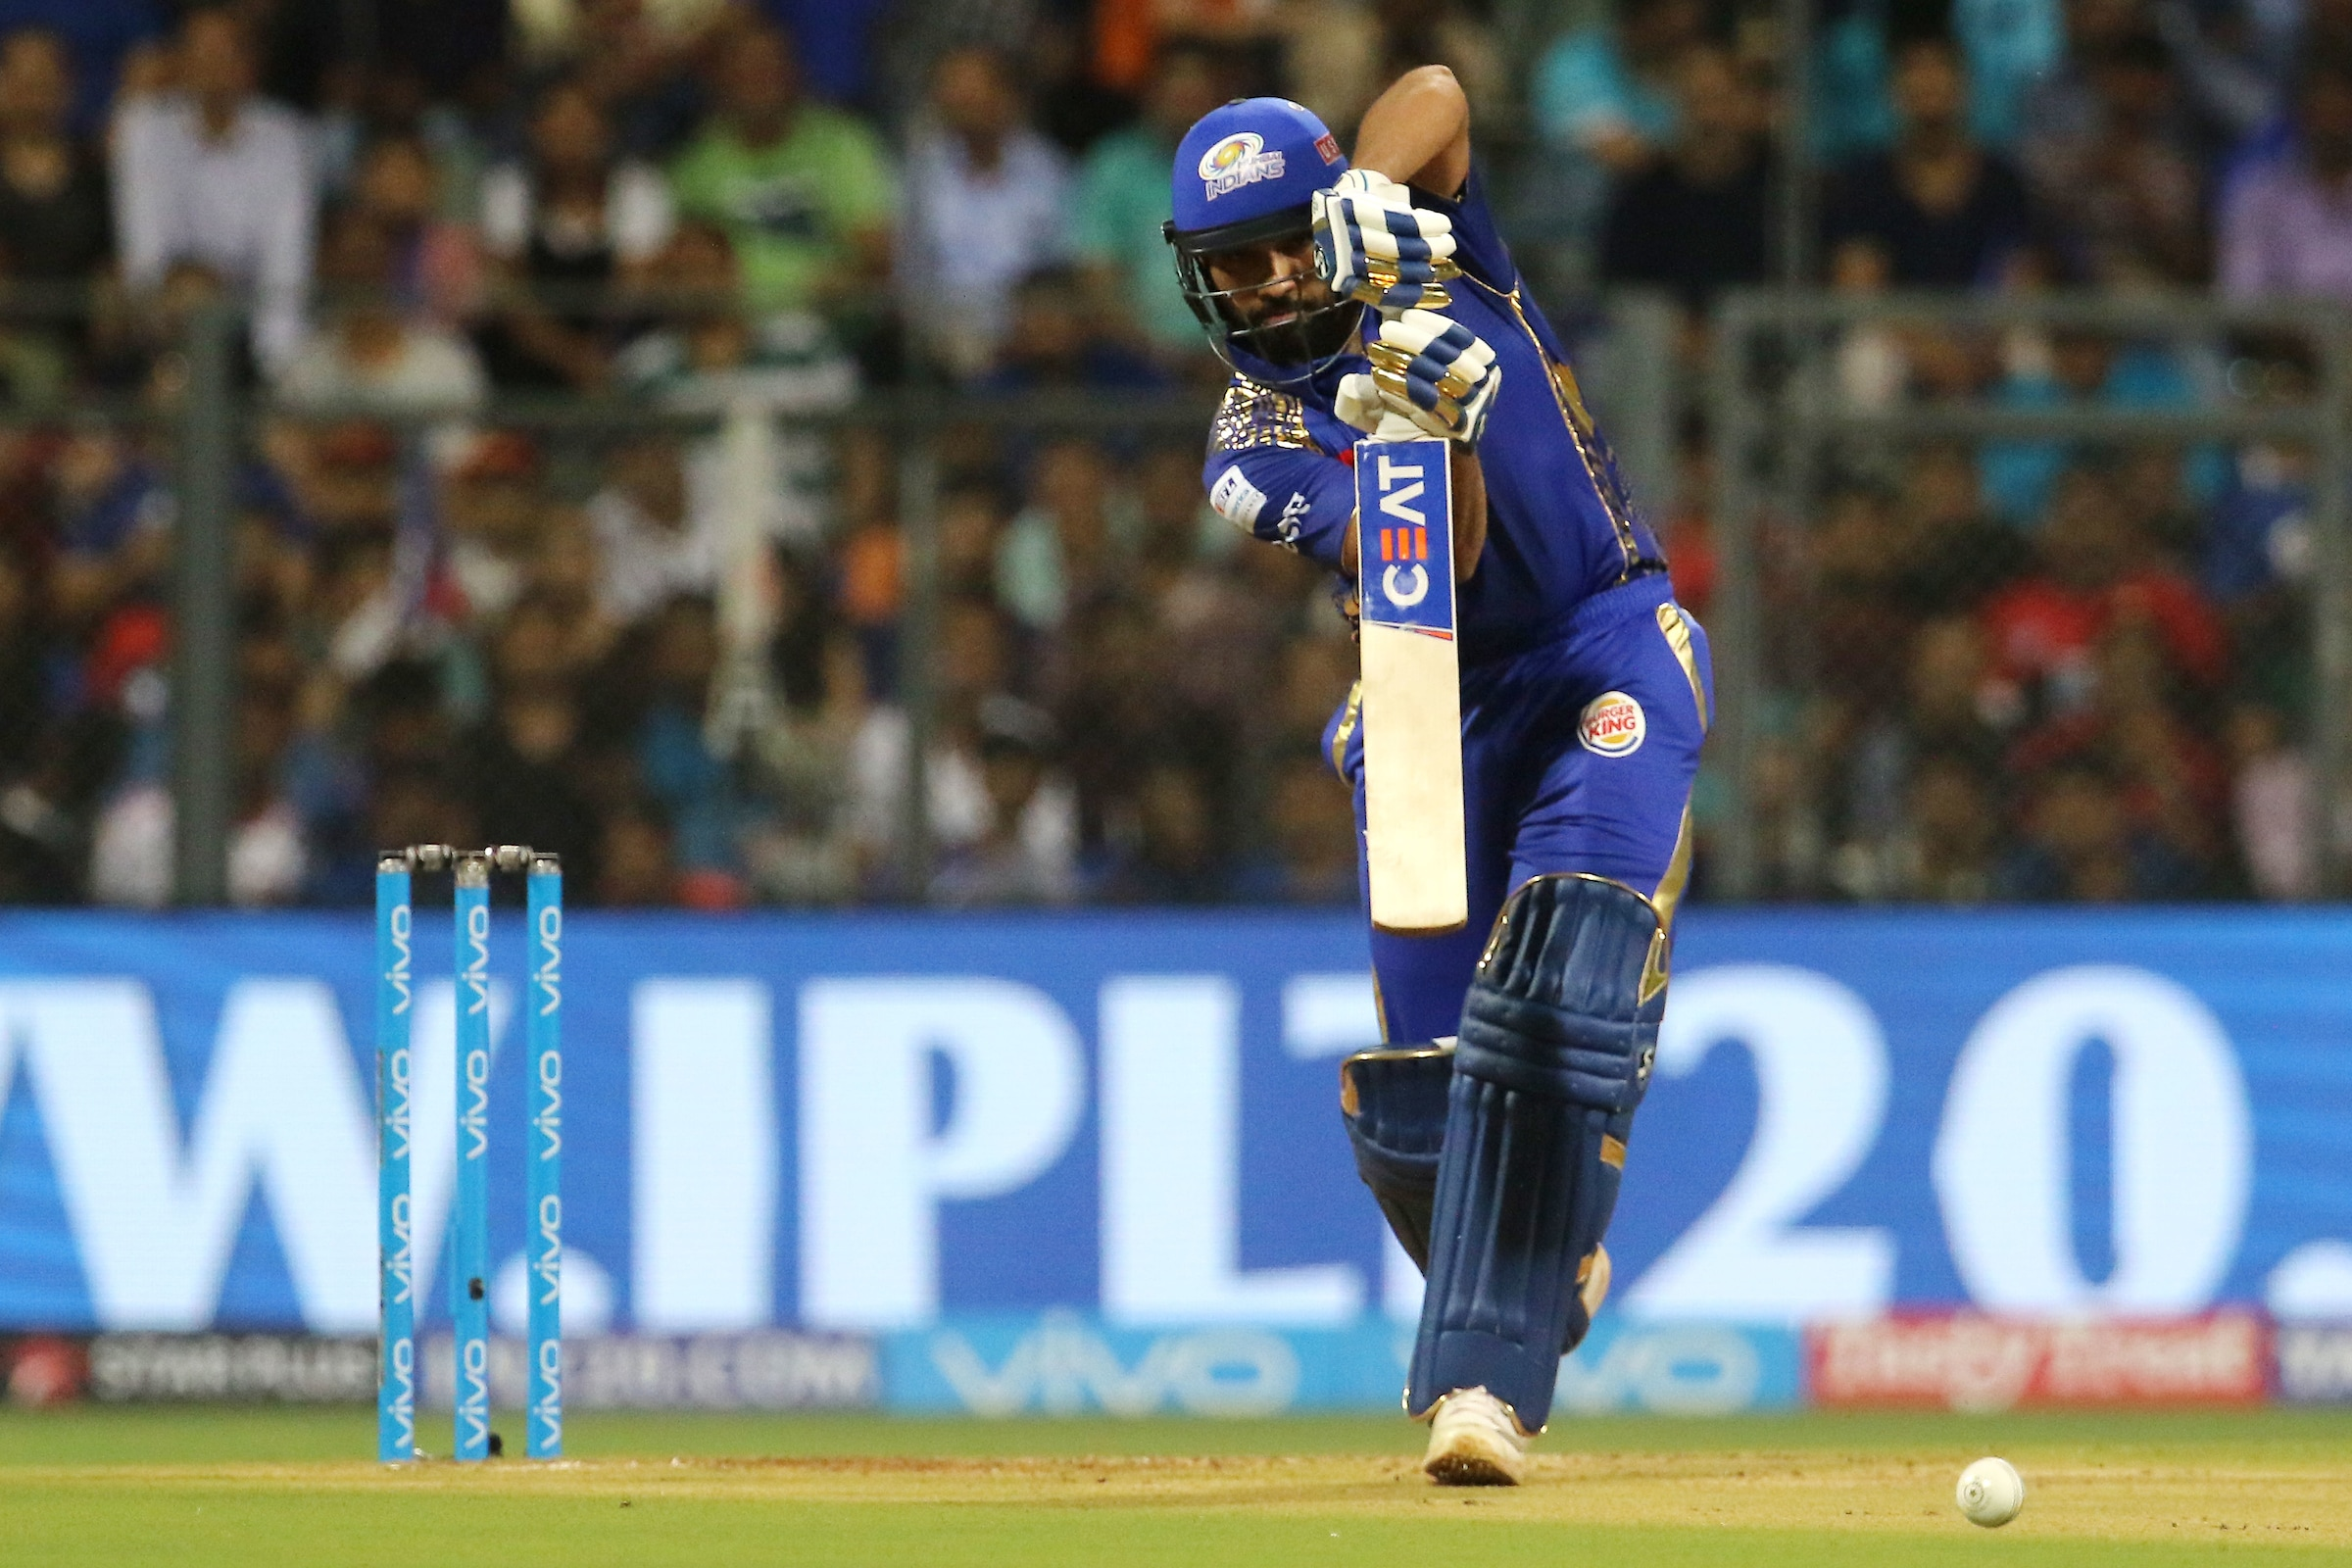 IPL 2018: Rohit Sharma Shines As MI Beat RCB To Earn First Win Of The Season